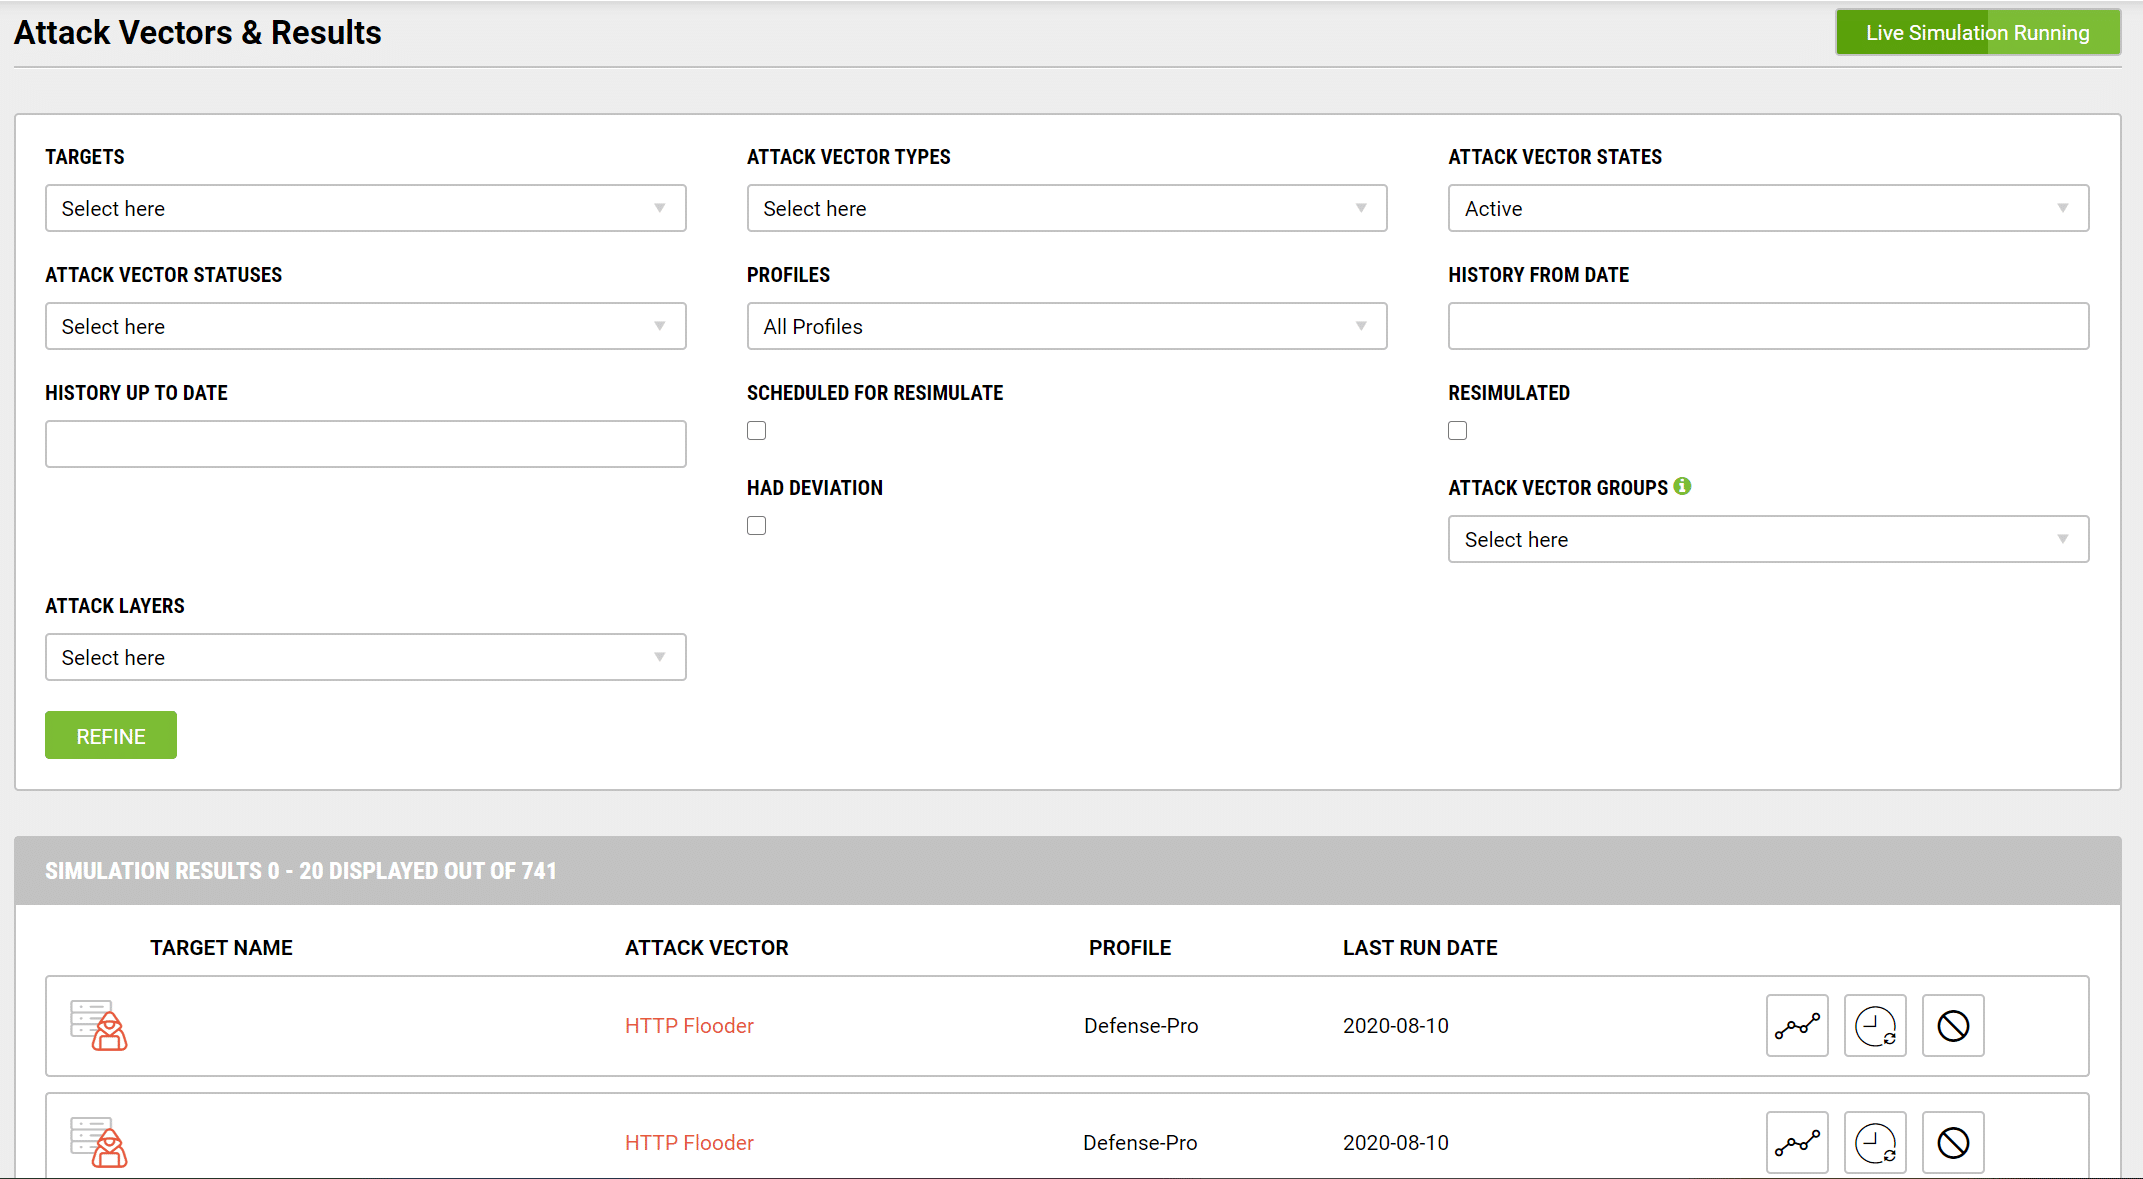 RESULTS_PAGE_2